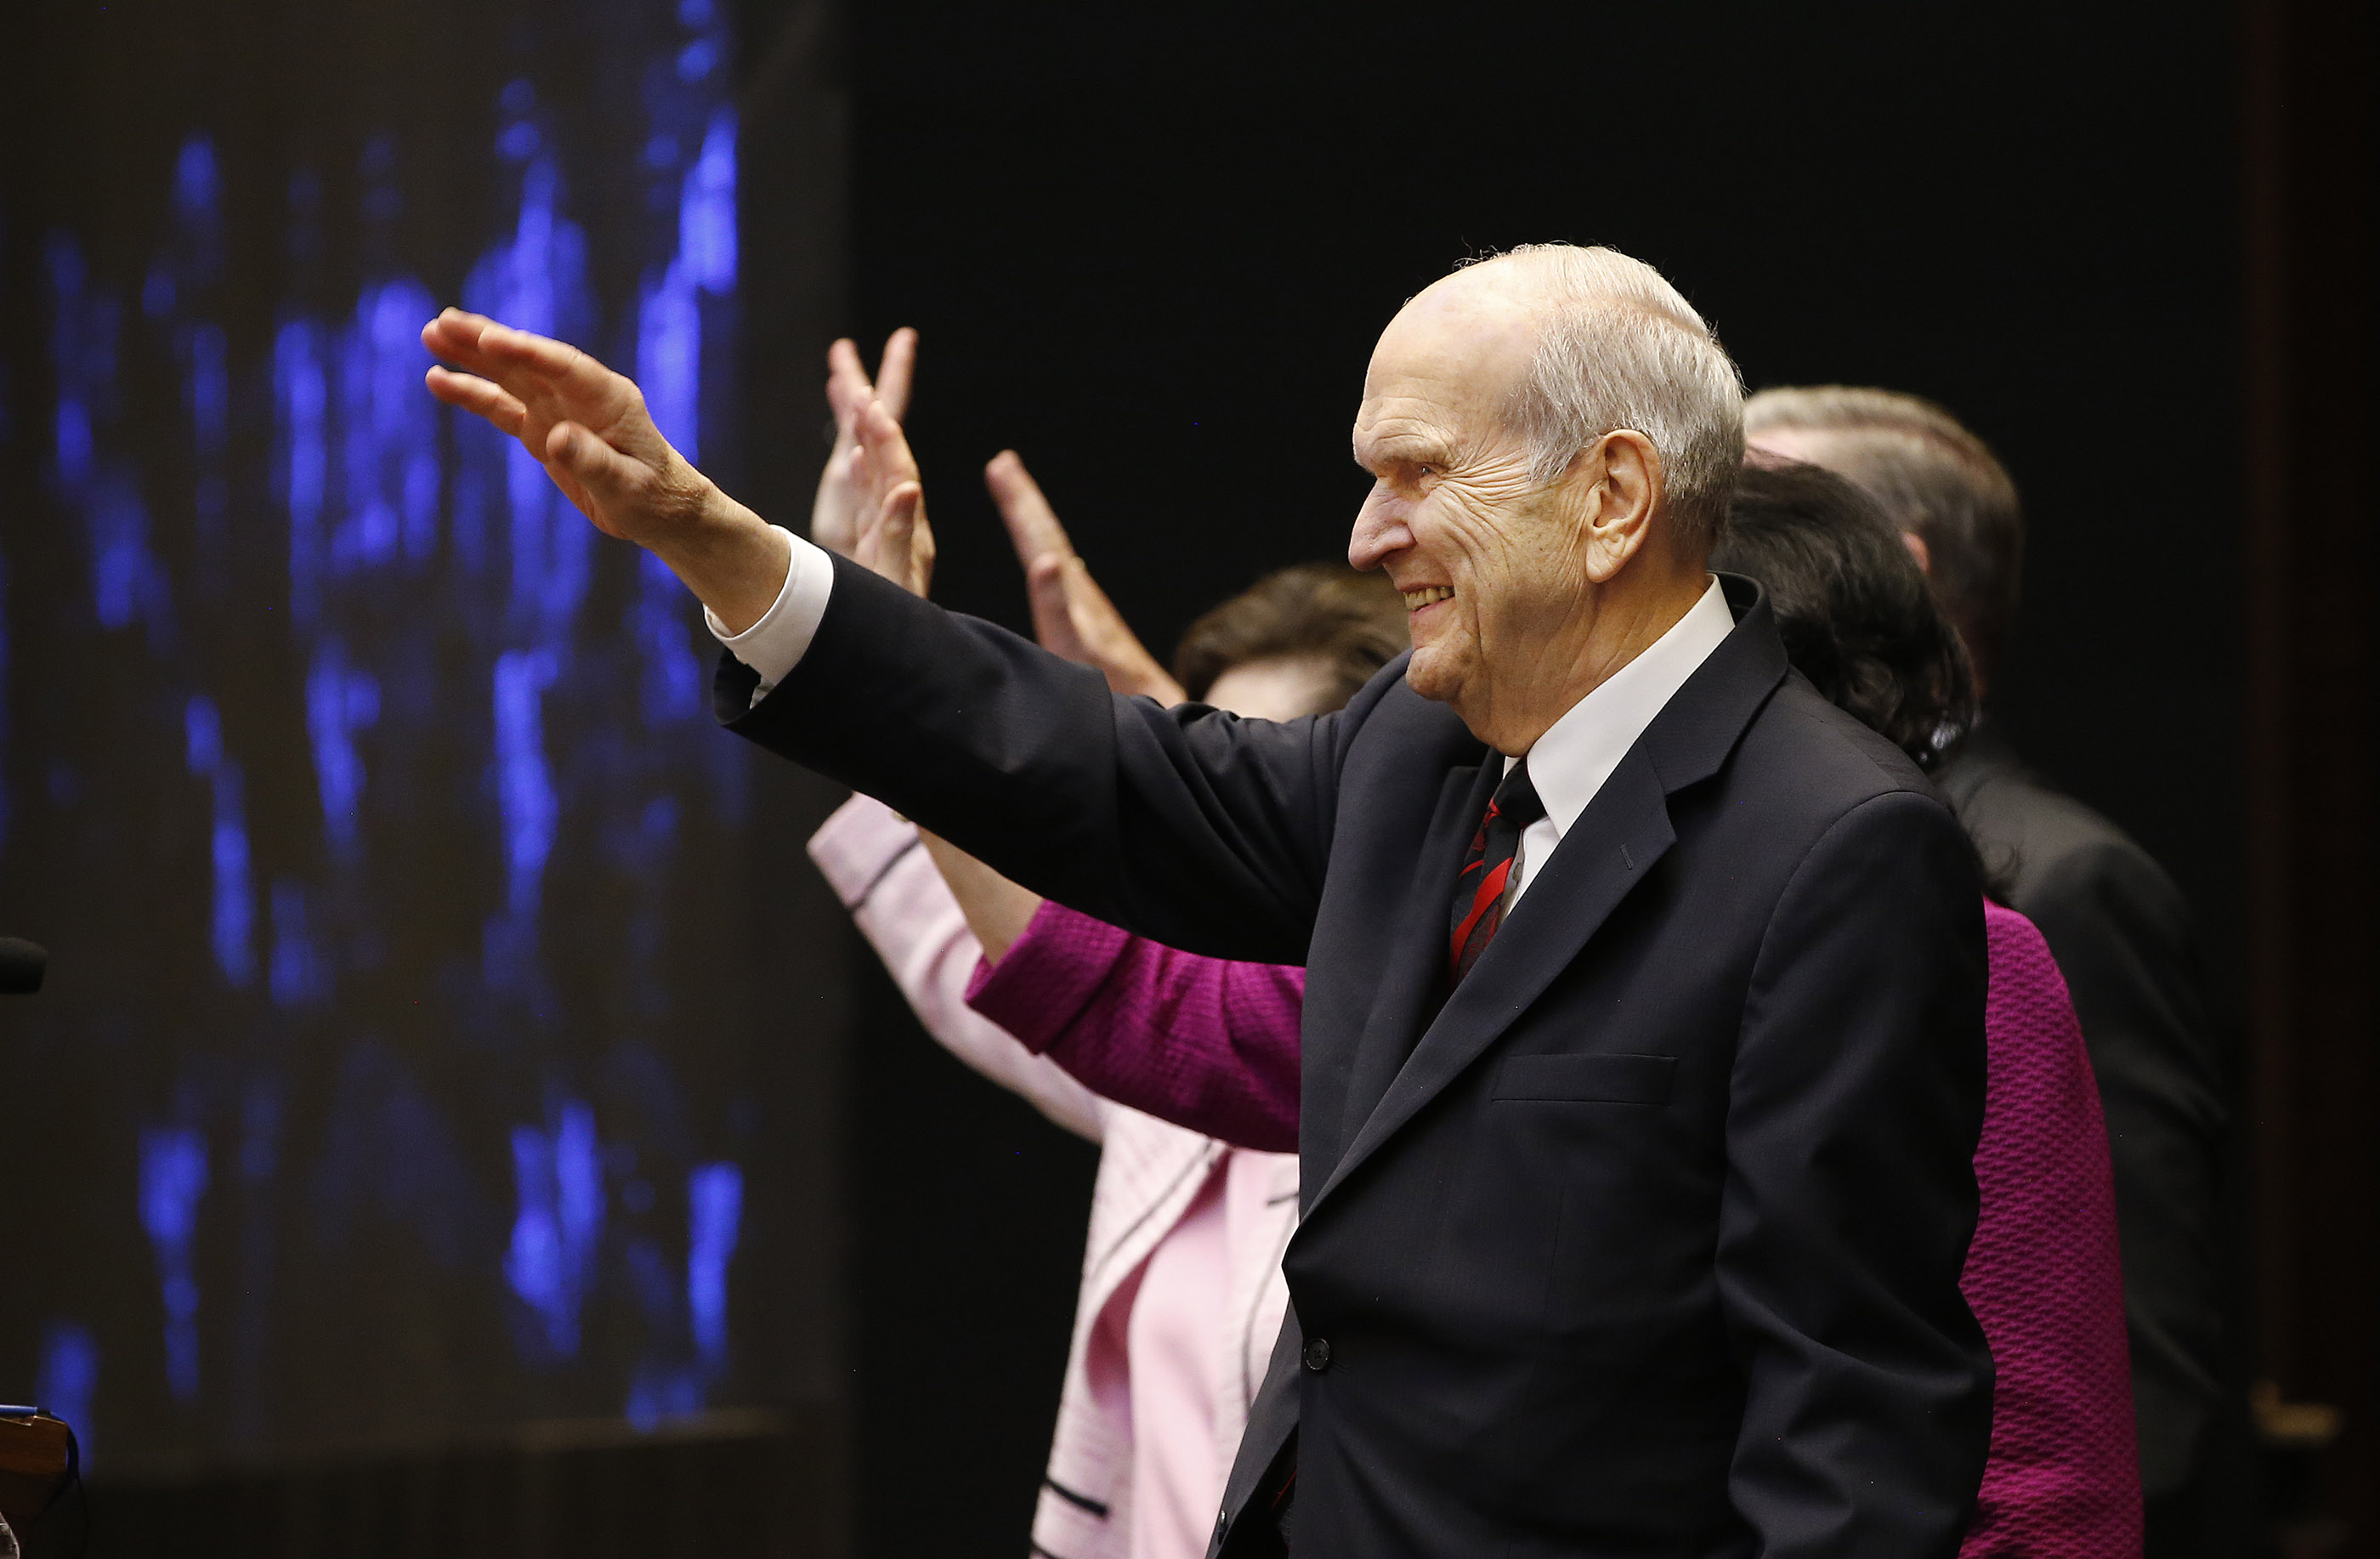 President Russell M. Nelson waves to attendees after a devotional in Bengaluru, India, on Thursday, April 19, 2018.